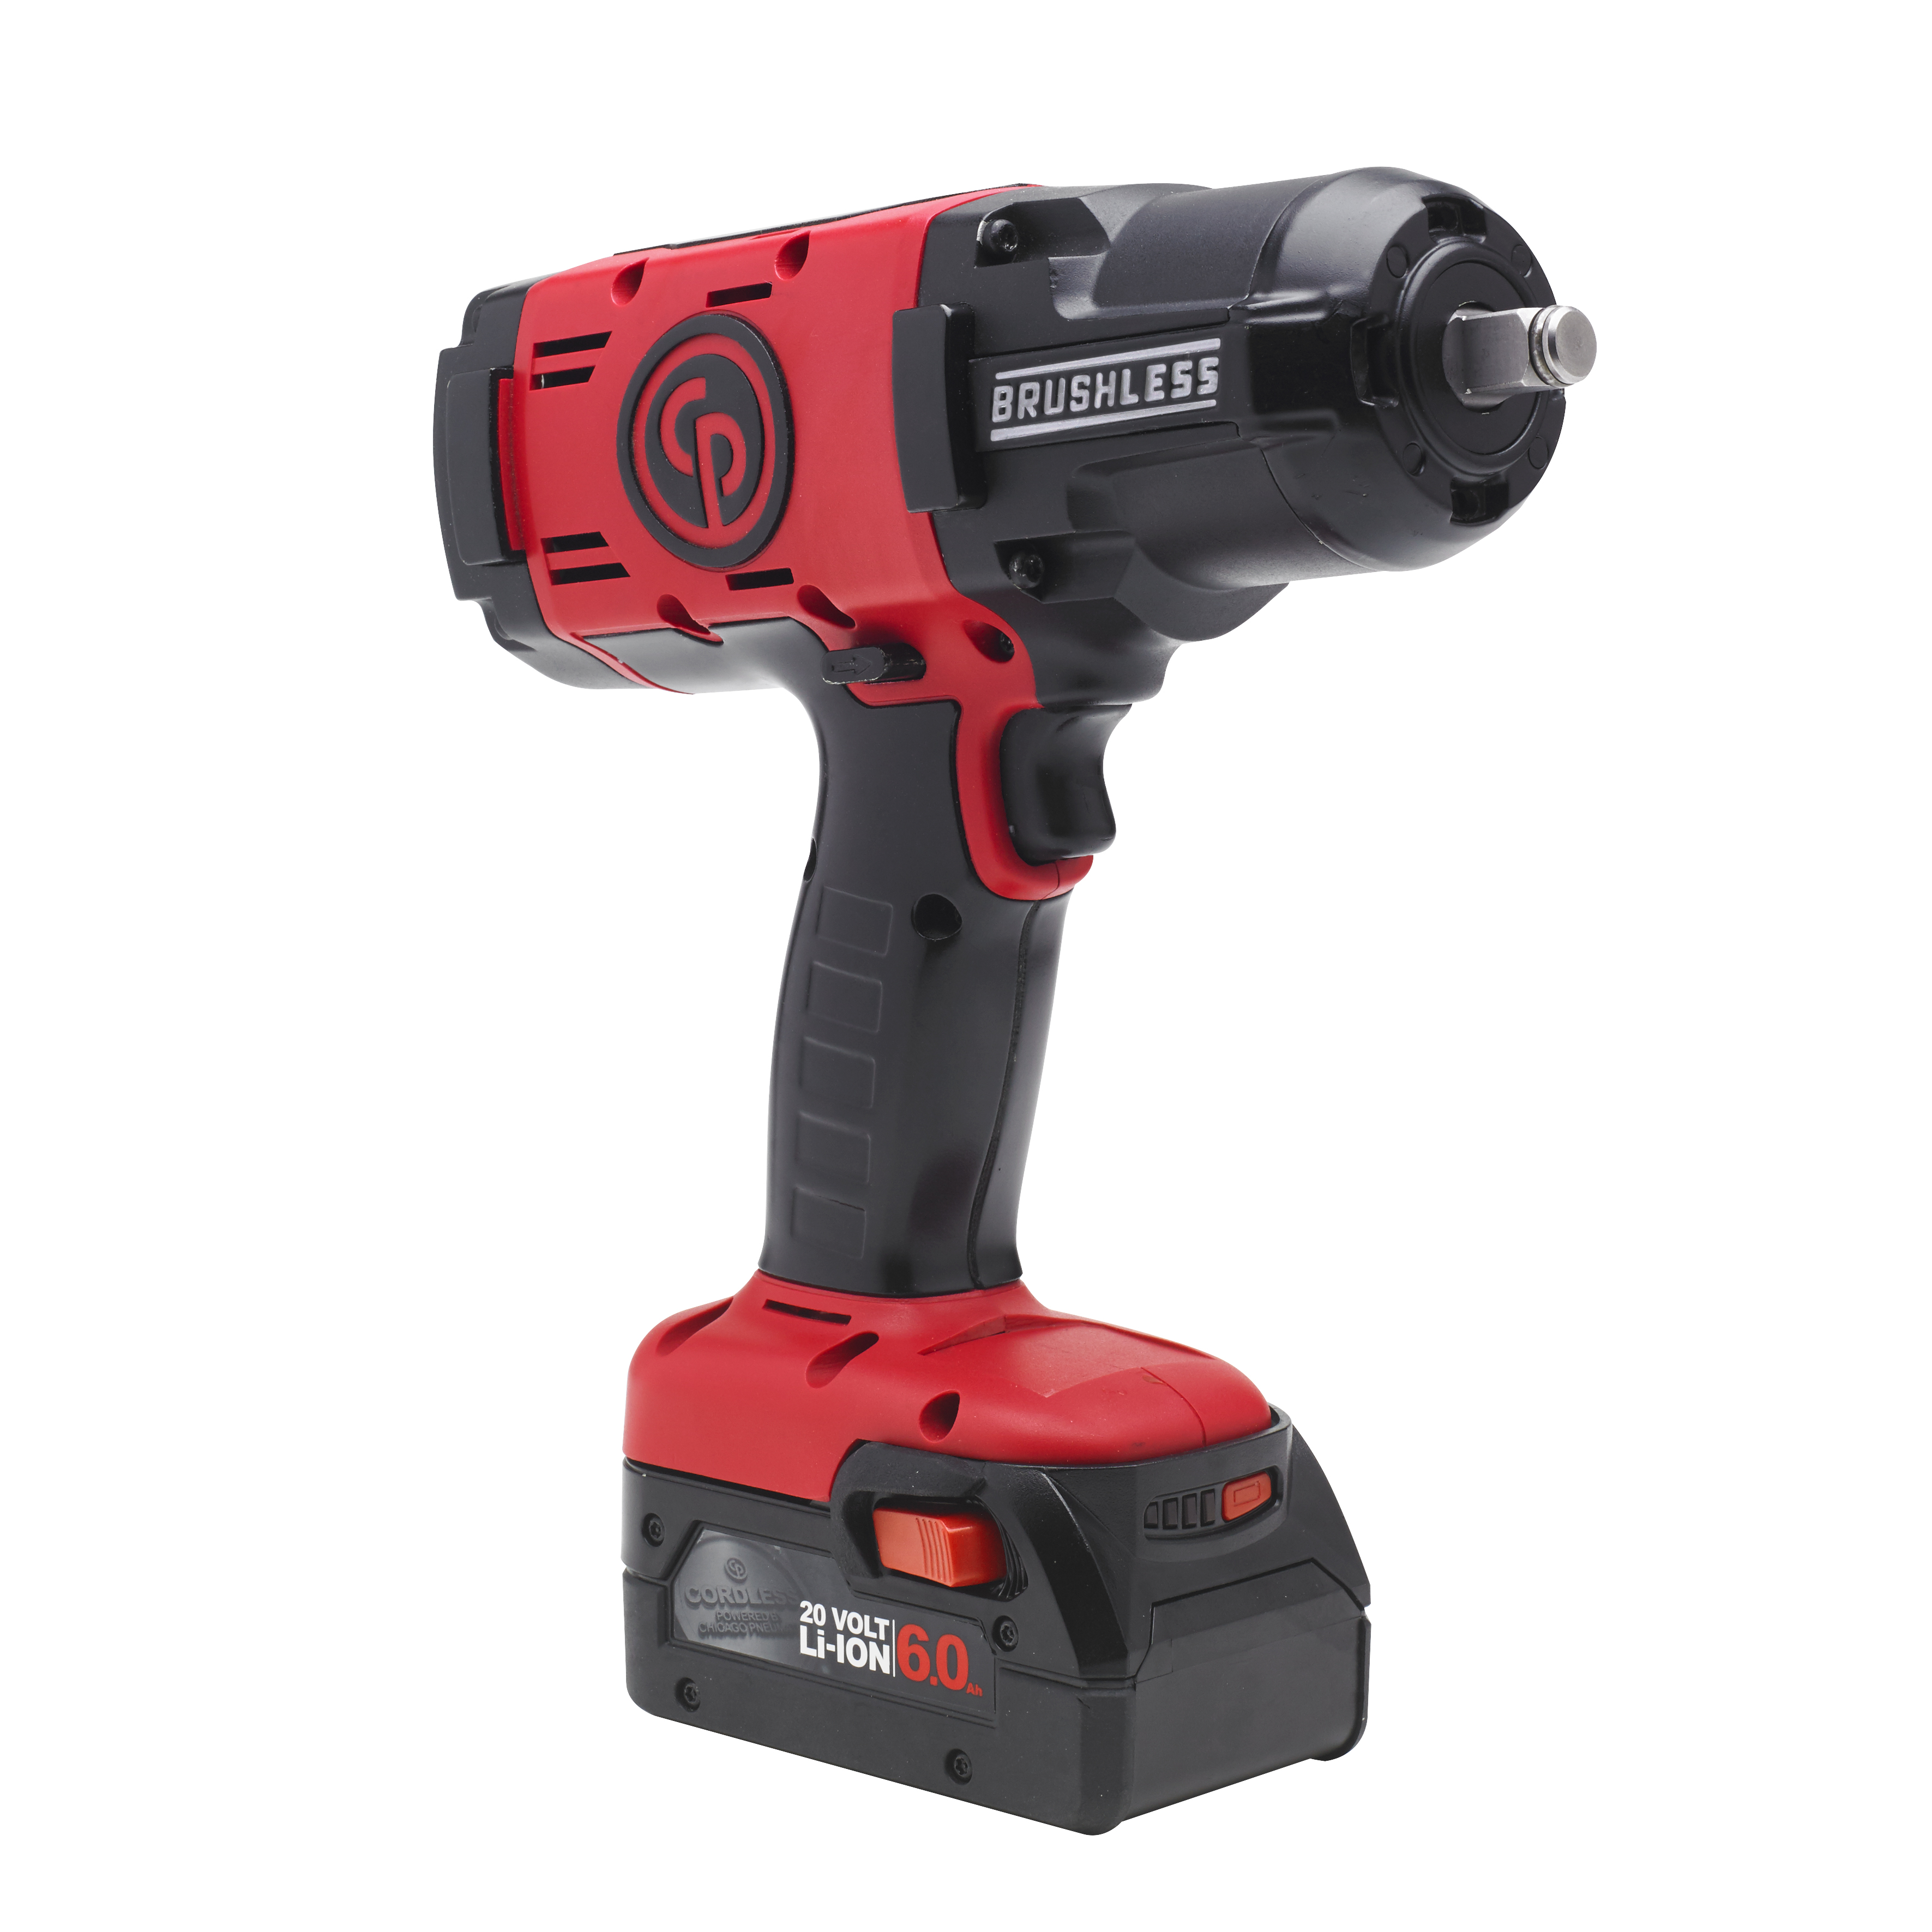 New Chicago Pneumatic Cordless Impact Wrench Has Two Shut-Off Positions